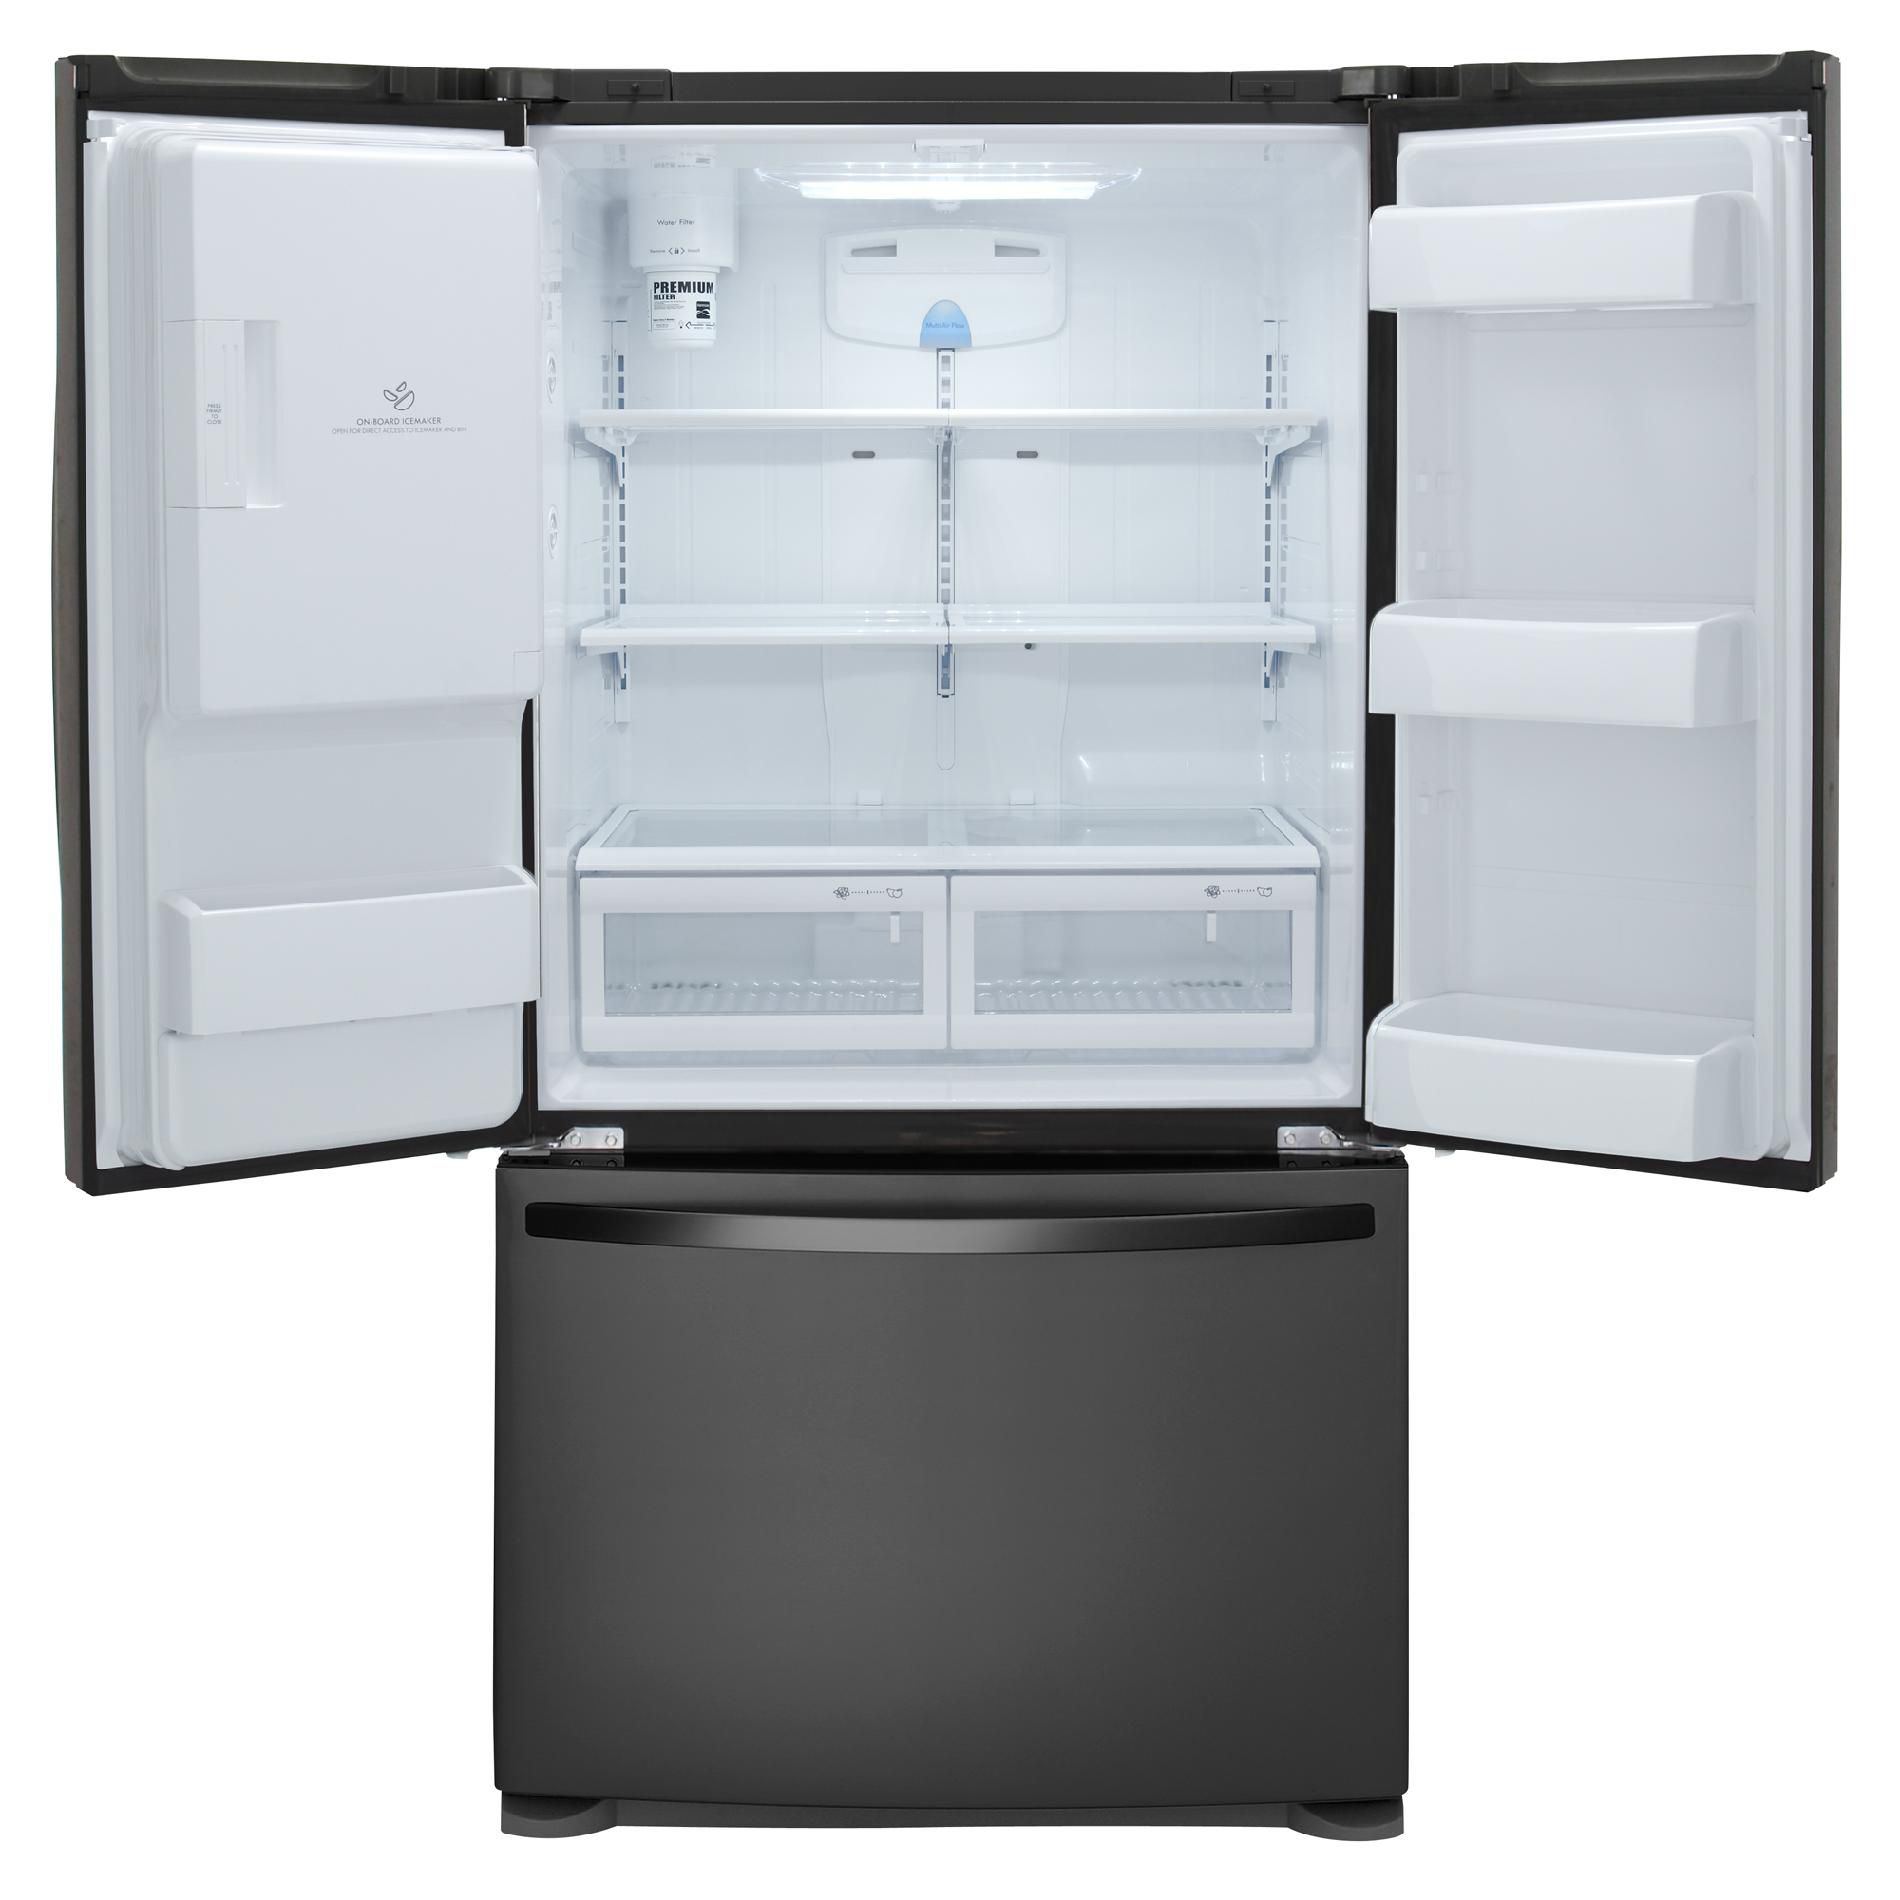 Kenmore 24.7 cu. ft. French-Door Bottom-Freezer, Black